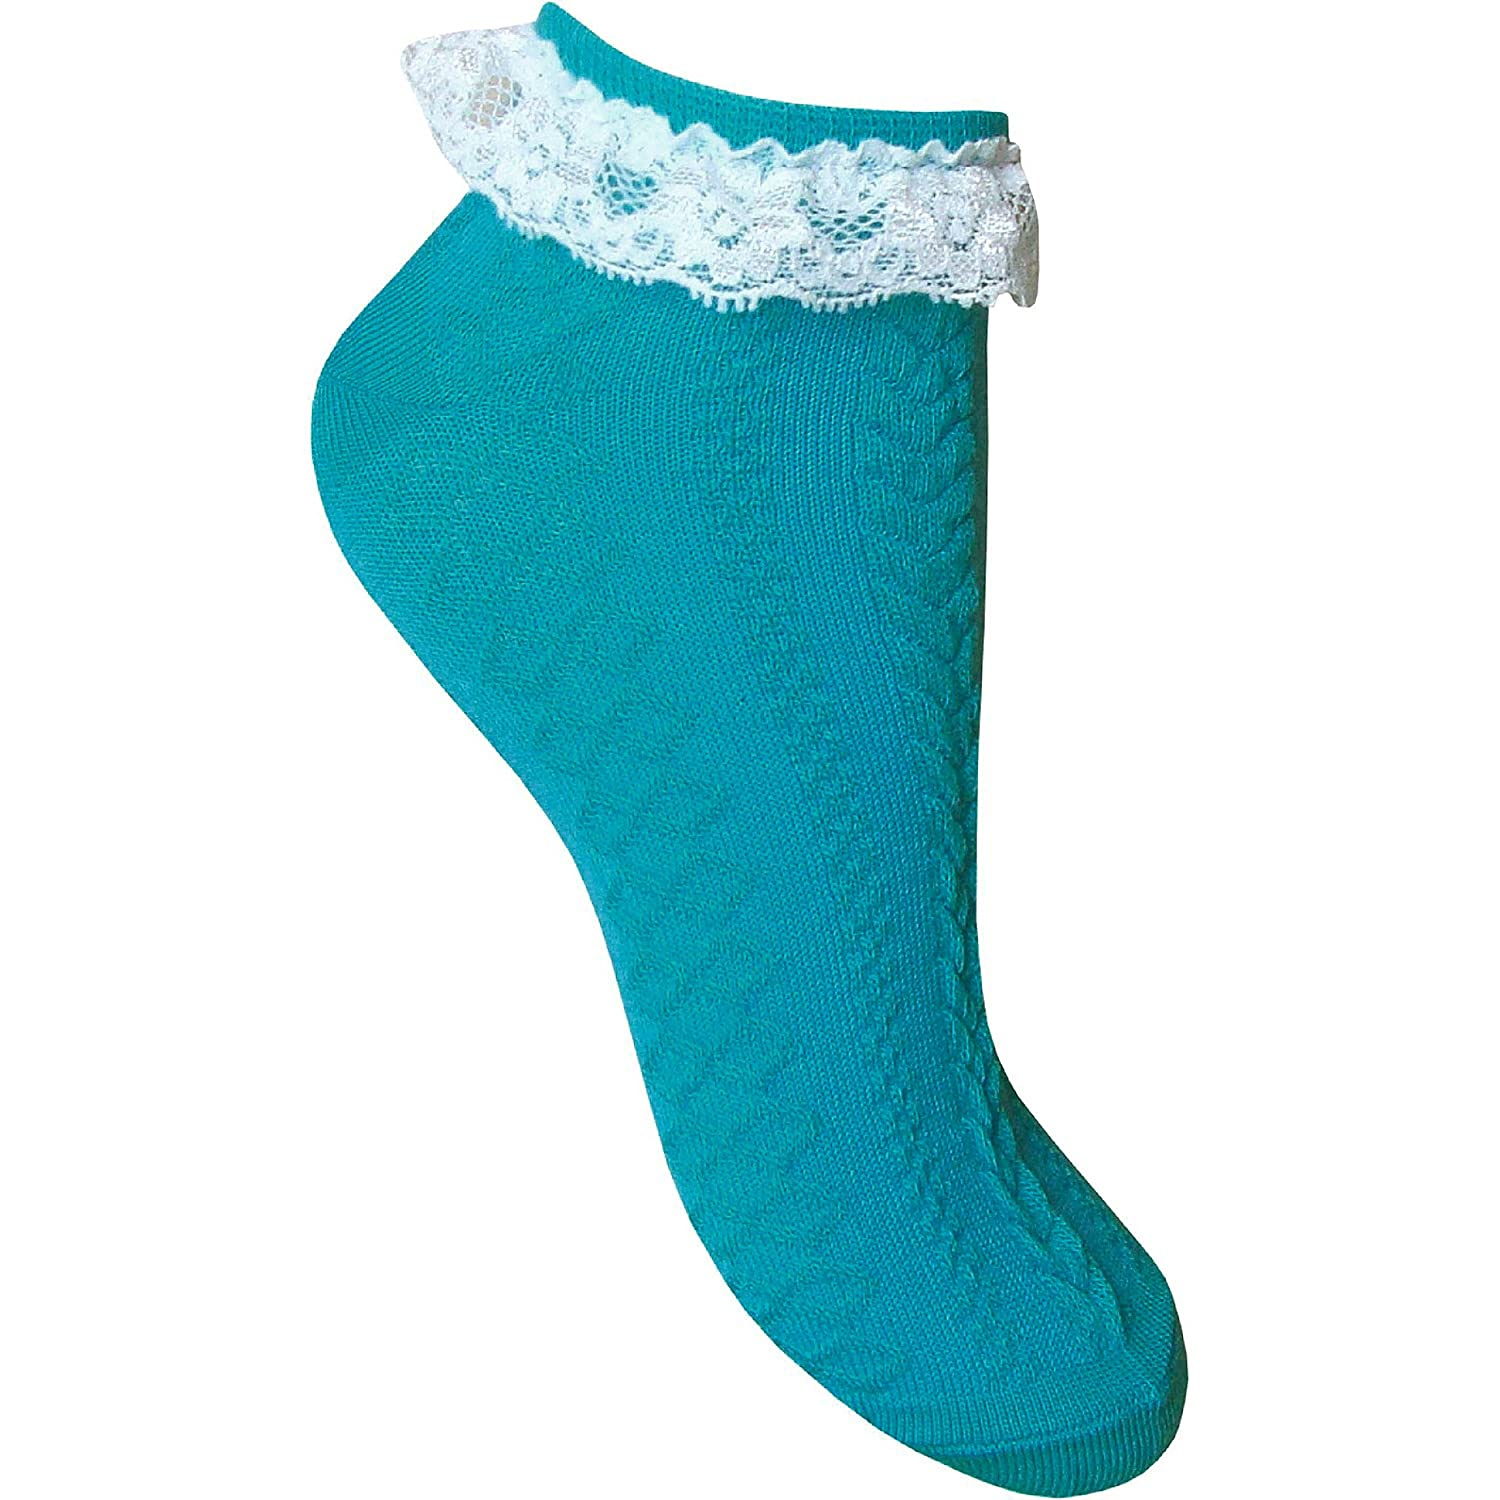 Ladies /& Girls Pretty Lace Top Textured Pattern Neon Cotton Rich Ankle Trainer Socks Liners